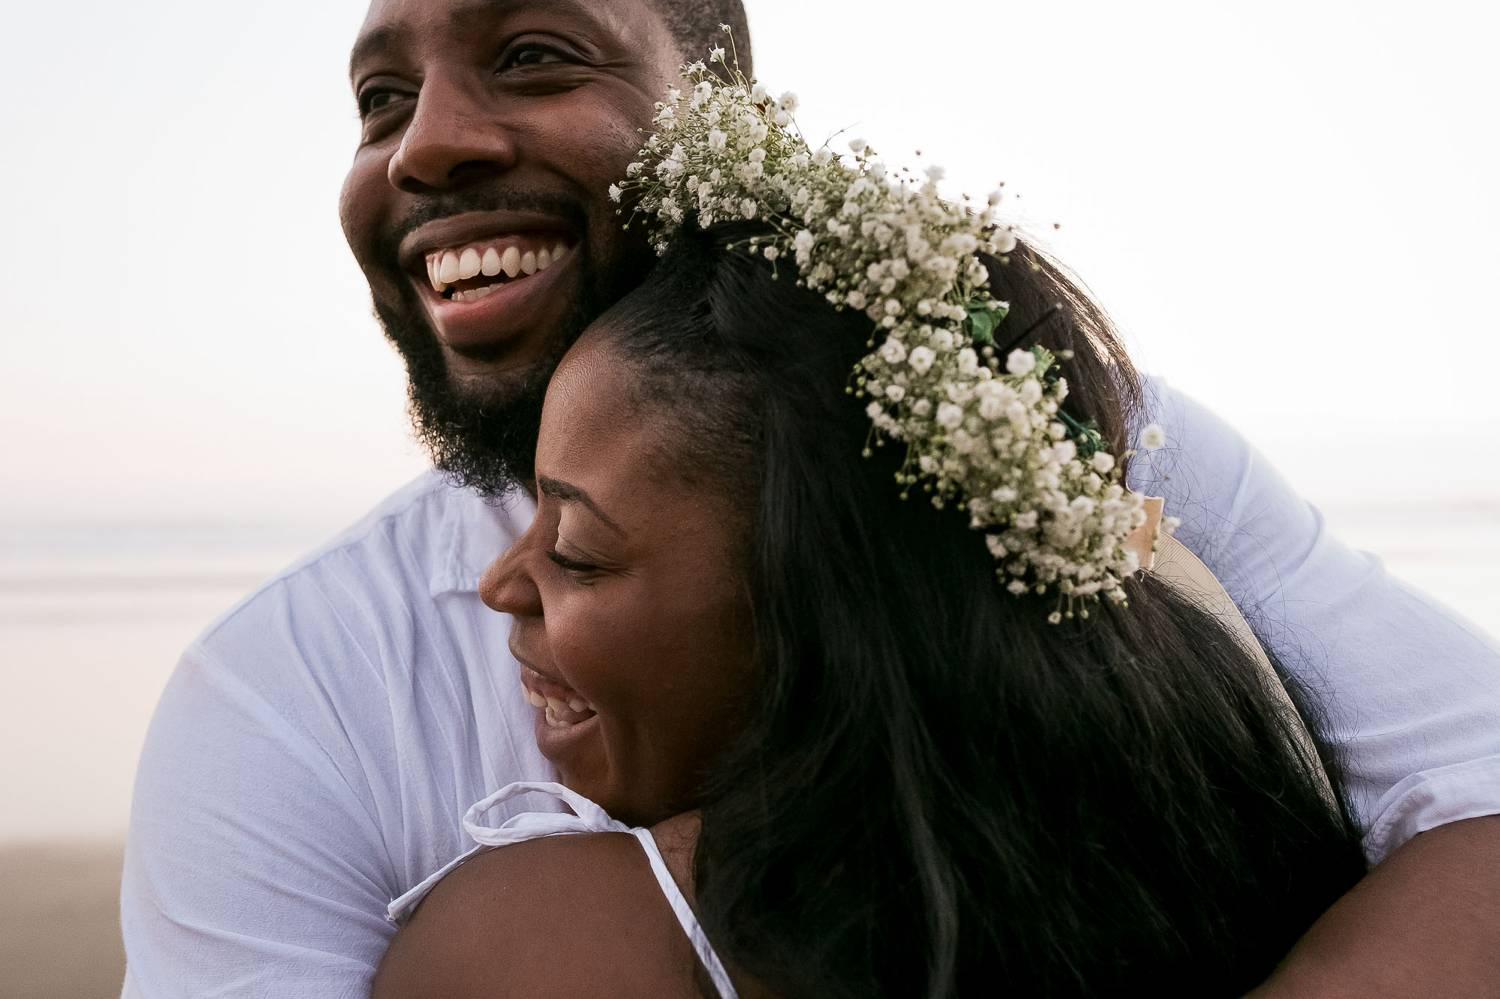 A close-up photo by Kevin Heslin depicts a Black bride and groom laughing and hugging on a beach.